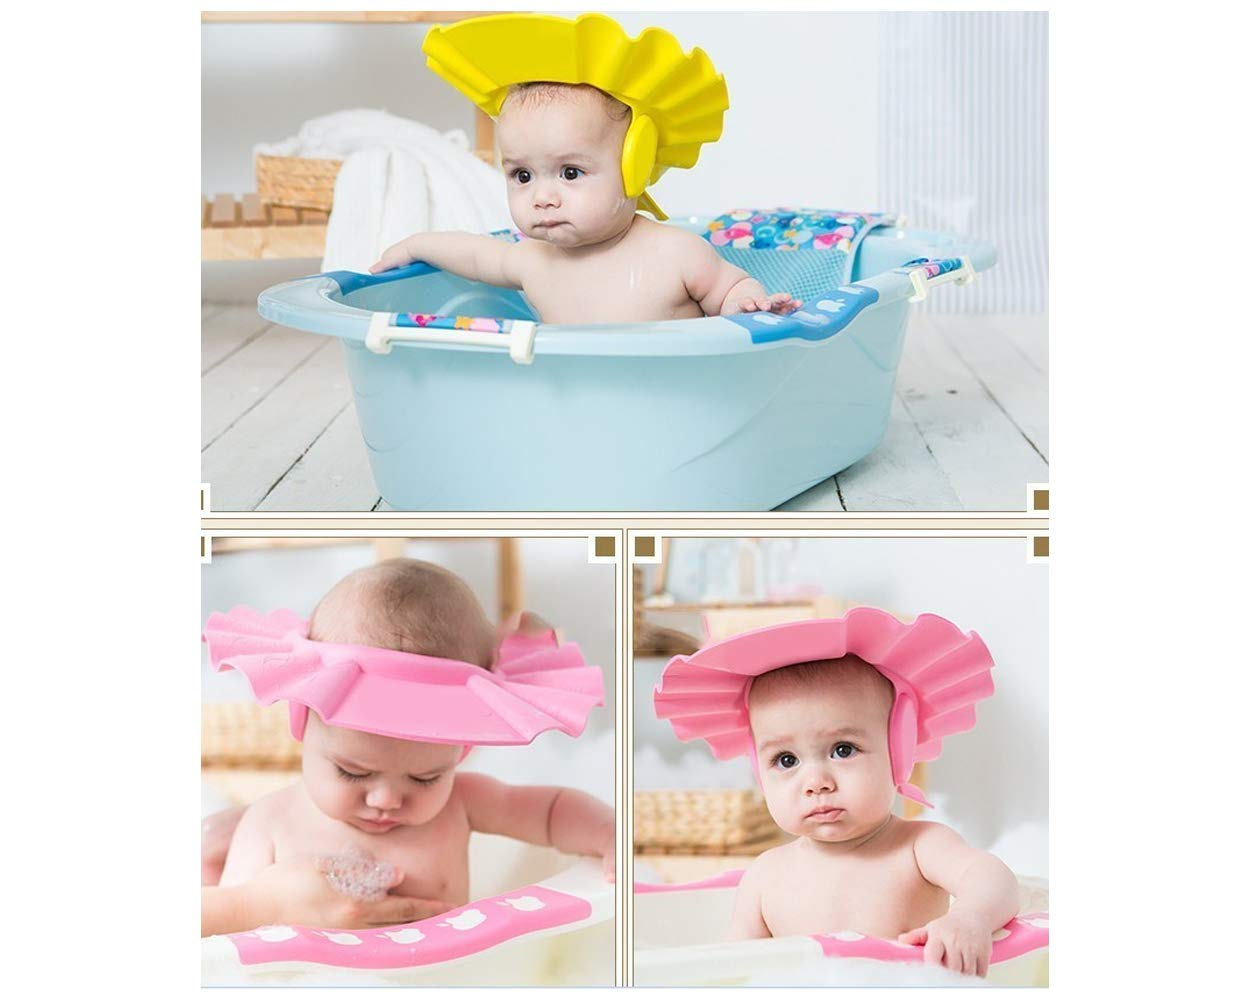 DS. DISTINCTIVE STYLE Baby Shower Cap Adjustable Baby Bath Hat with Ear Protection Soft and Comfortable Kids Shower Cap - Pink